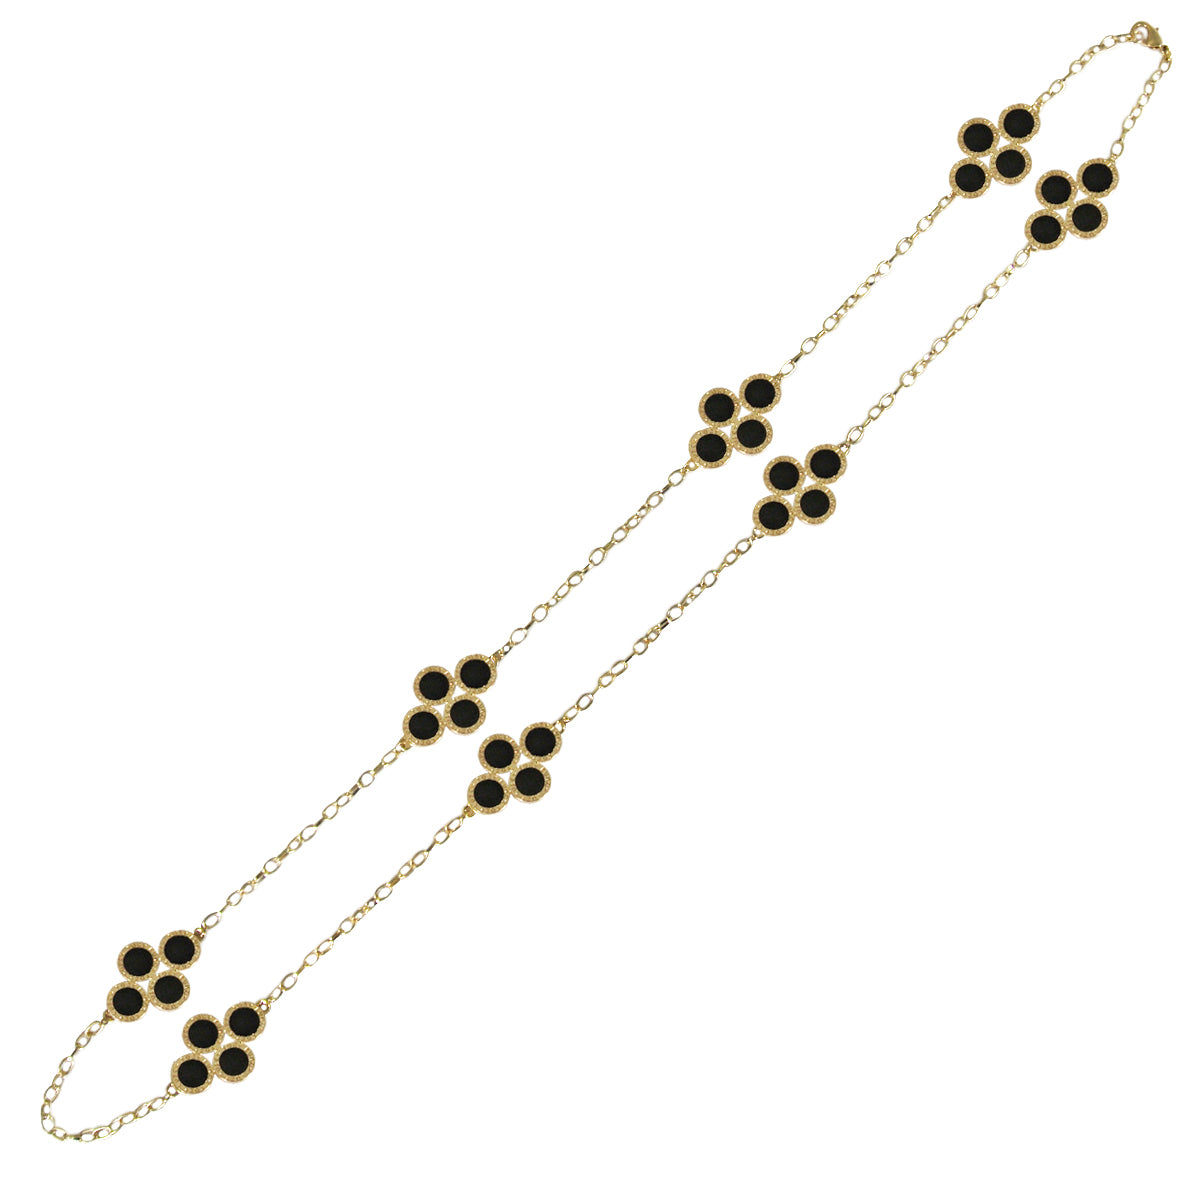 Black Clover Long Chain Necklace